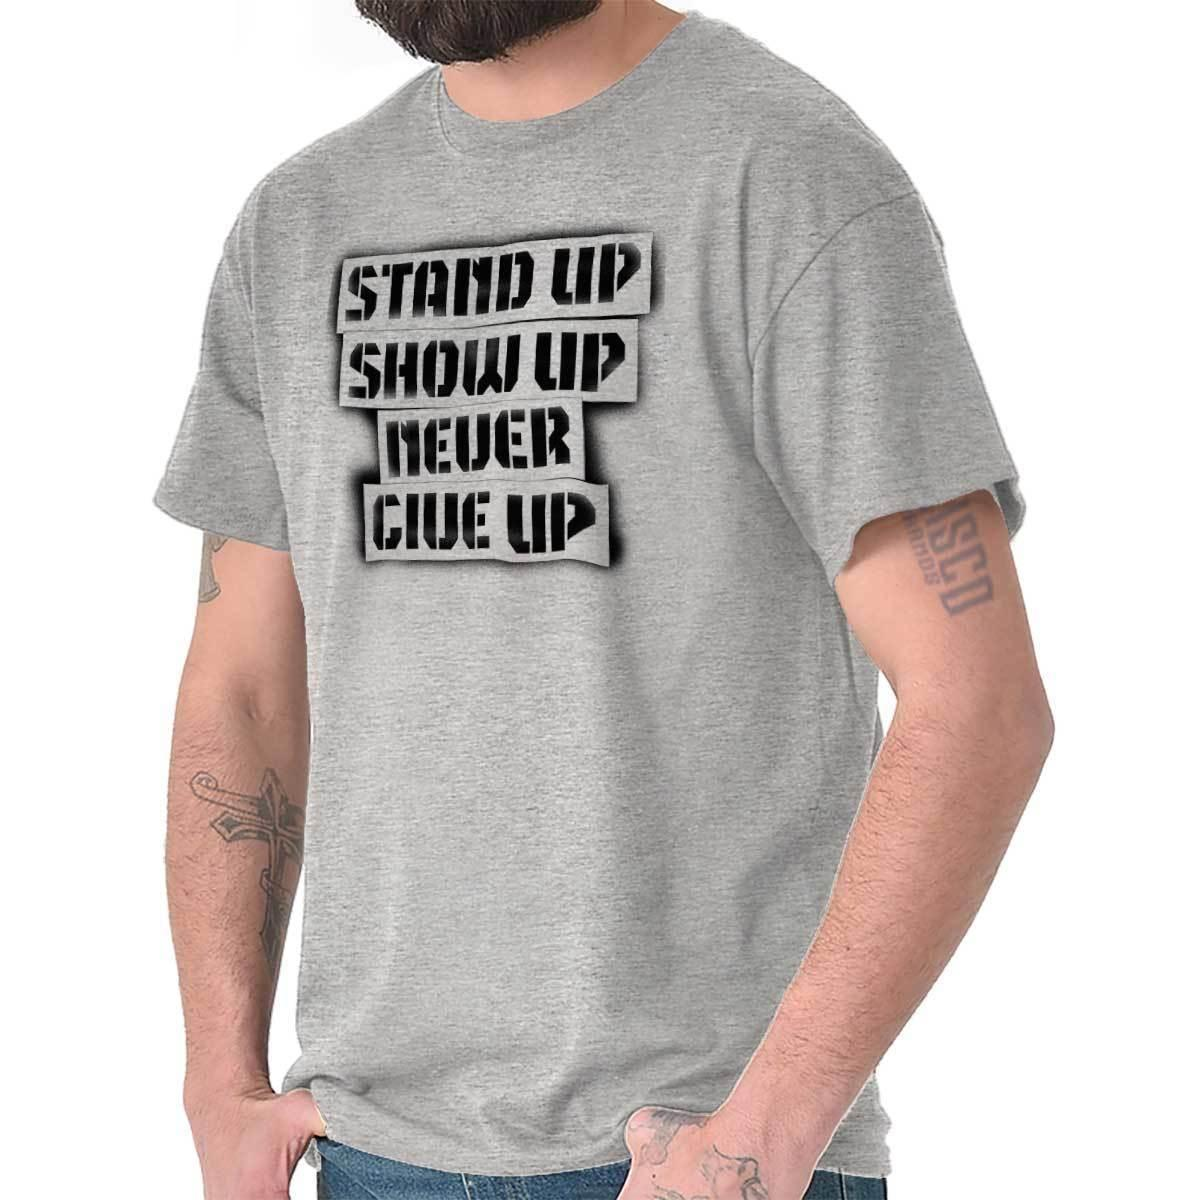 59f09e653b Stand Up Show Never Give Up Cool Gift Cute Workout Gym Edgy T Shirt Tee  Funny Unisex Casual Tee Gift Buy Tees Funniest T Shirt From Shirt_monkey,  ...